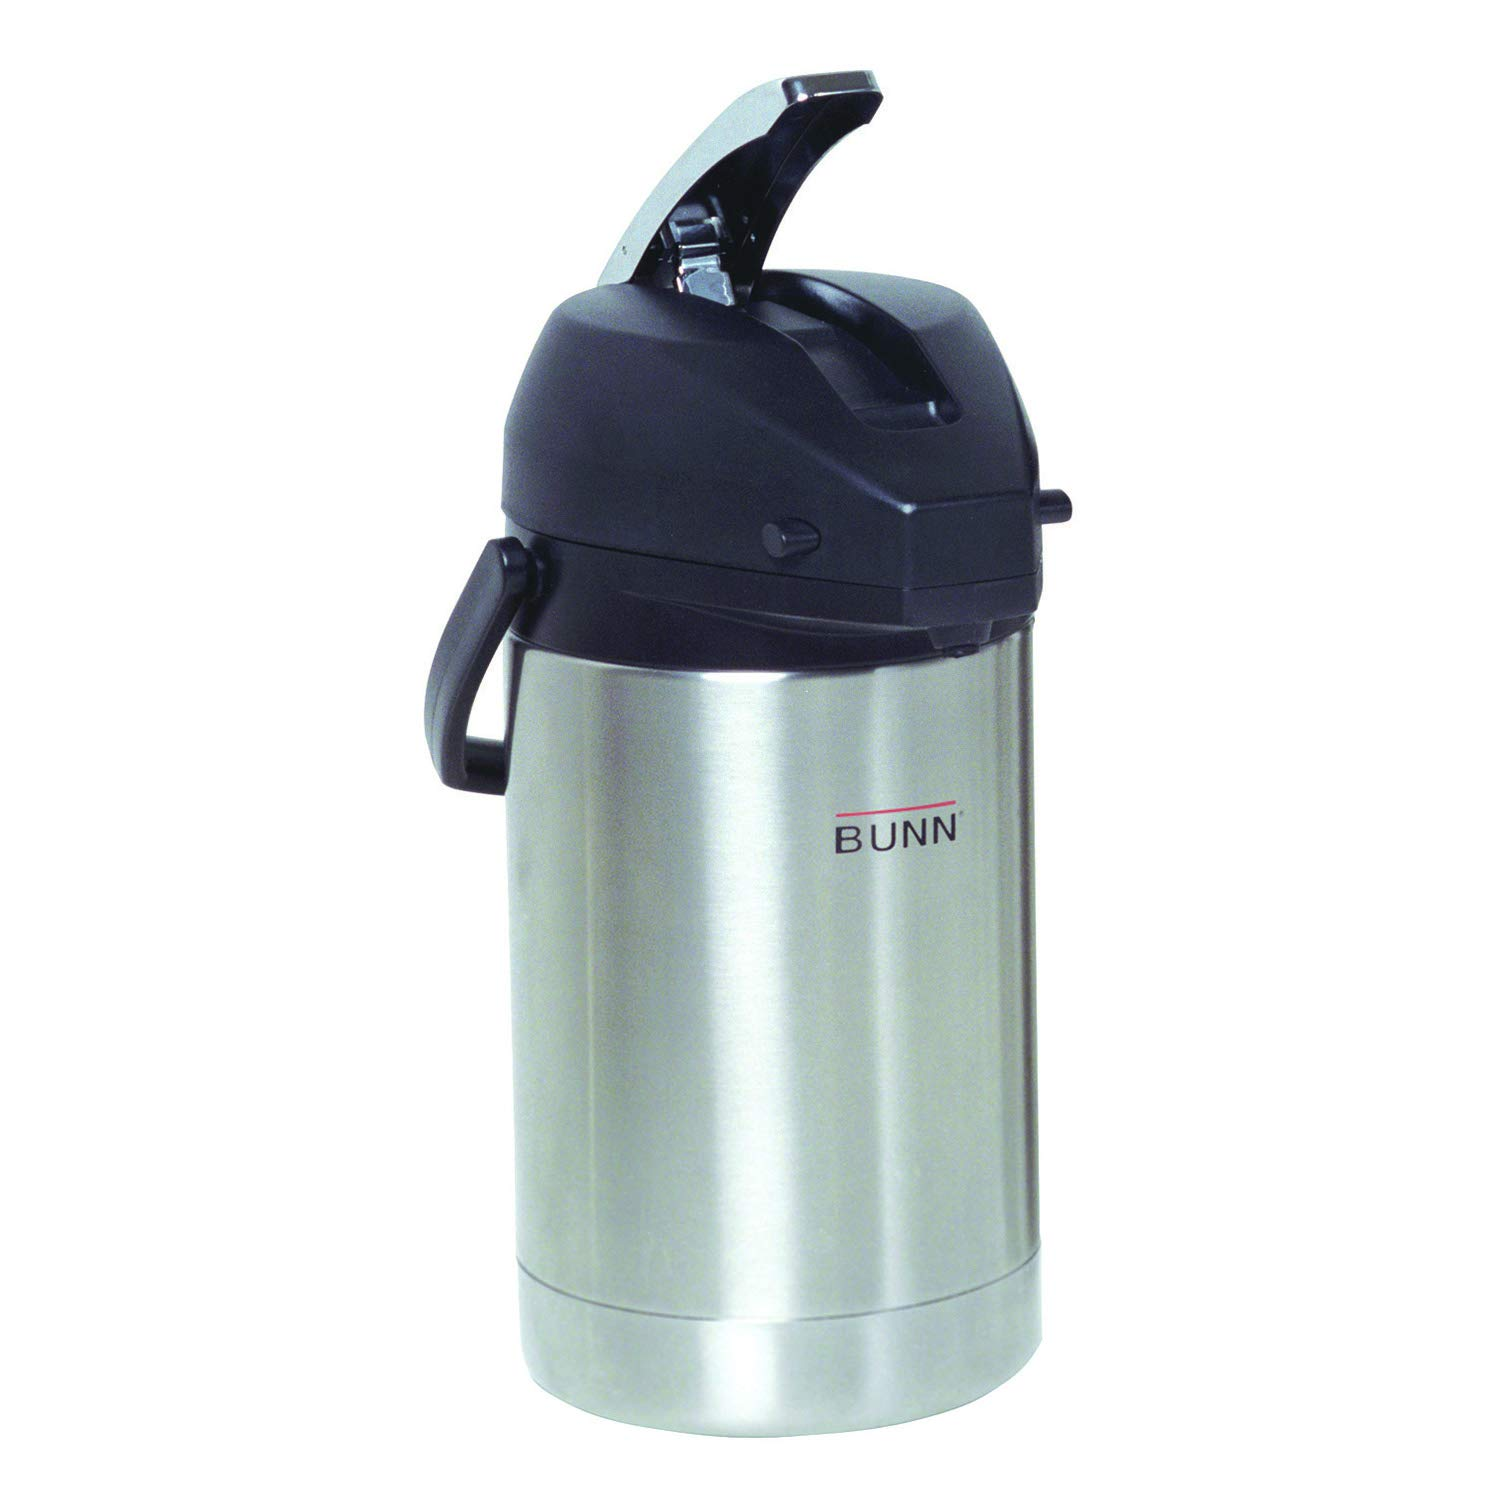 BUNN 32125.0000 2.5 Liter Lever-Action Airpot, Stainless Steel by BUNN